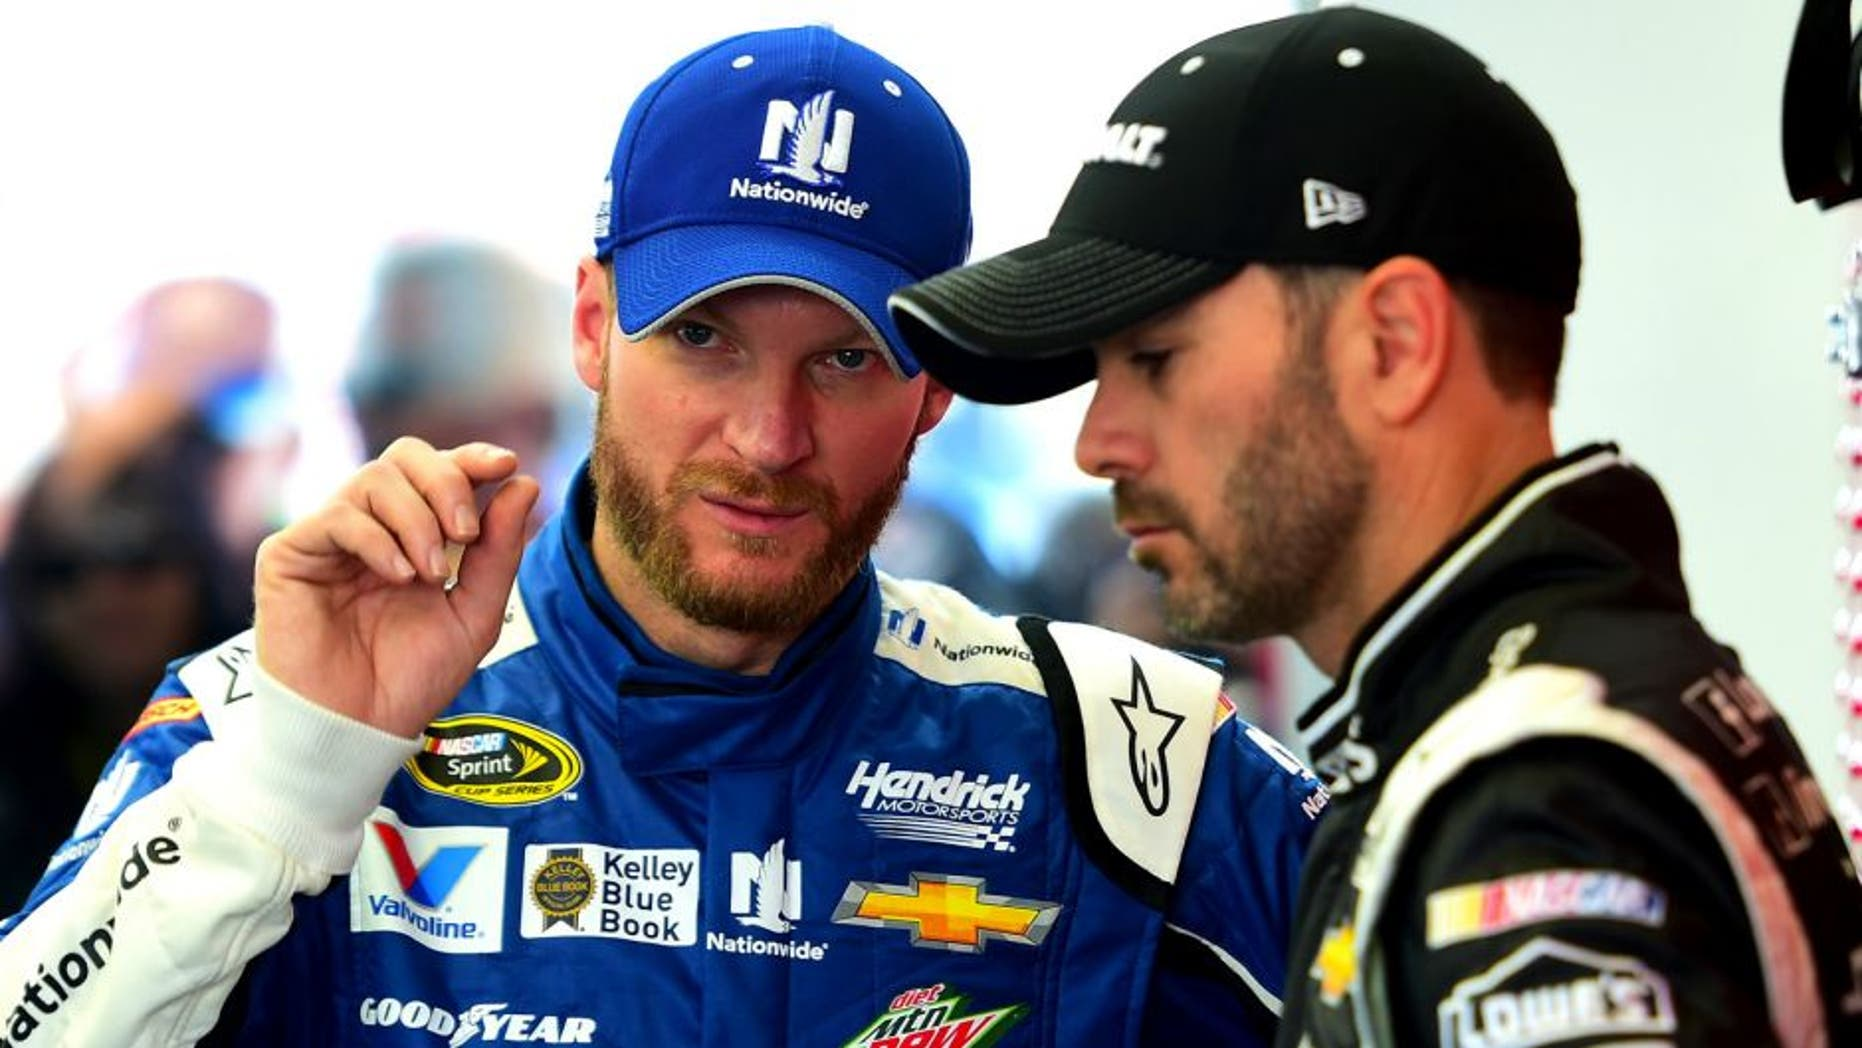 LAS VEGAS, NV - MARCH 07: Dale Earnhardt Jr., driver of the #88 Nationwide Chevrolet, speaks with Jimmie Johnson, driver of the #48 Kobalt Tools Chevrolet, in the garage during qualifying for the NASCAR XFINITY Series Boyd Gaming 300 at Las Vegas Motor Speedway on March 7, 2015 in Las Vegas, Nevada. (Photo by Robert Laberge/Getty Images)